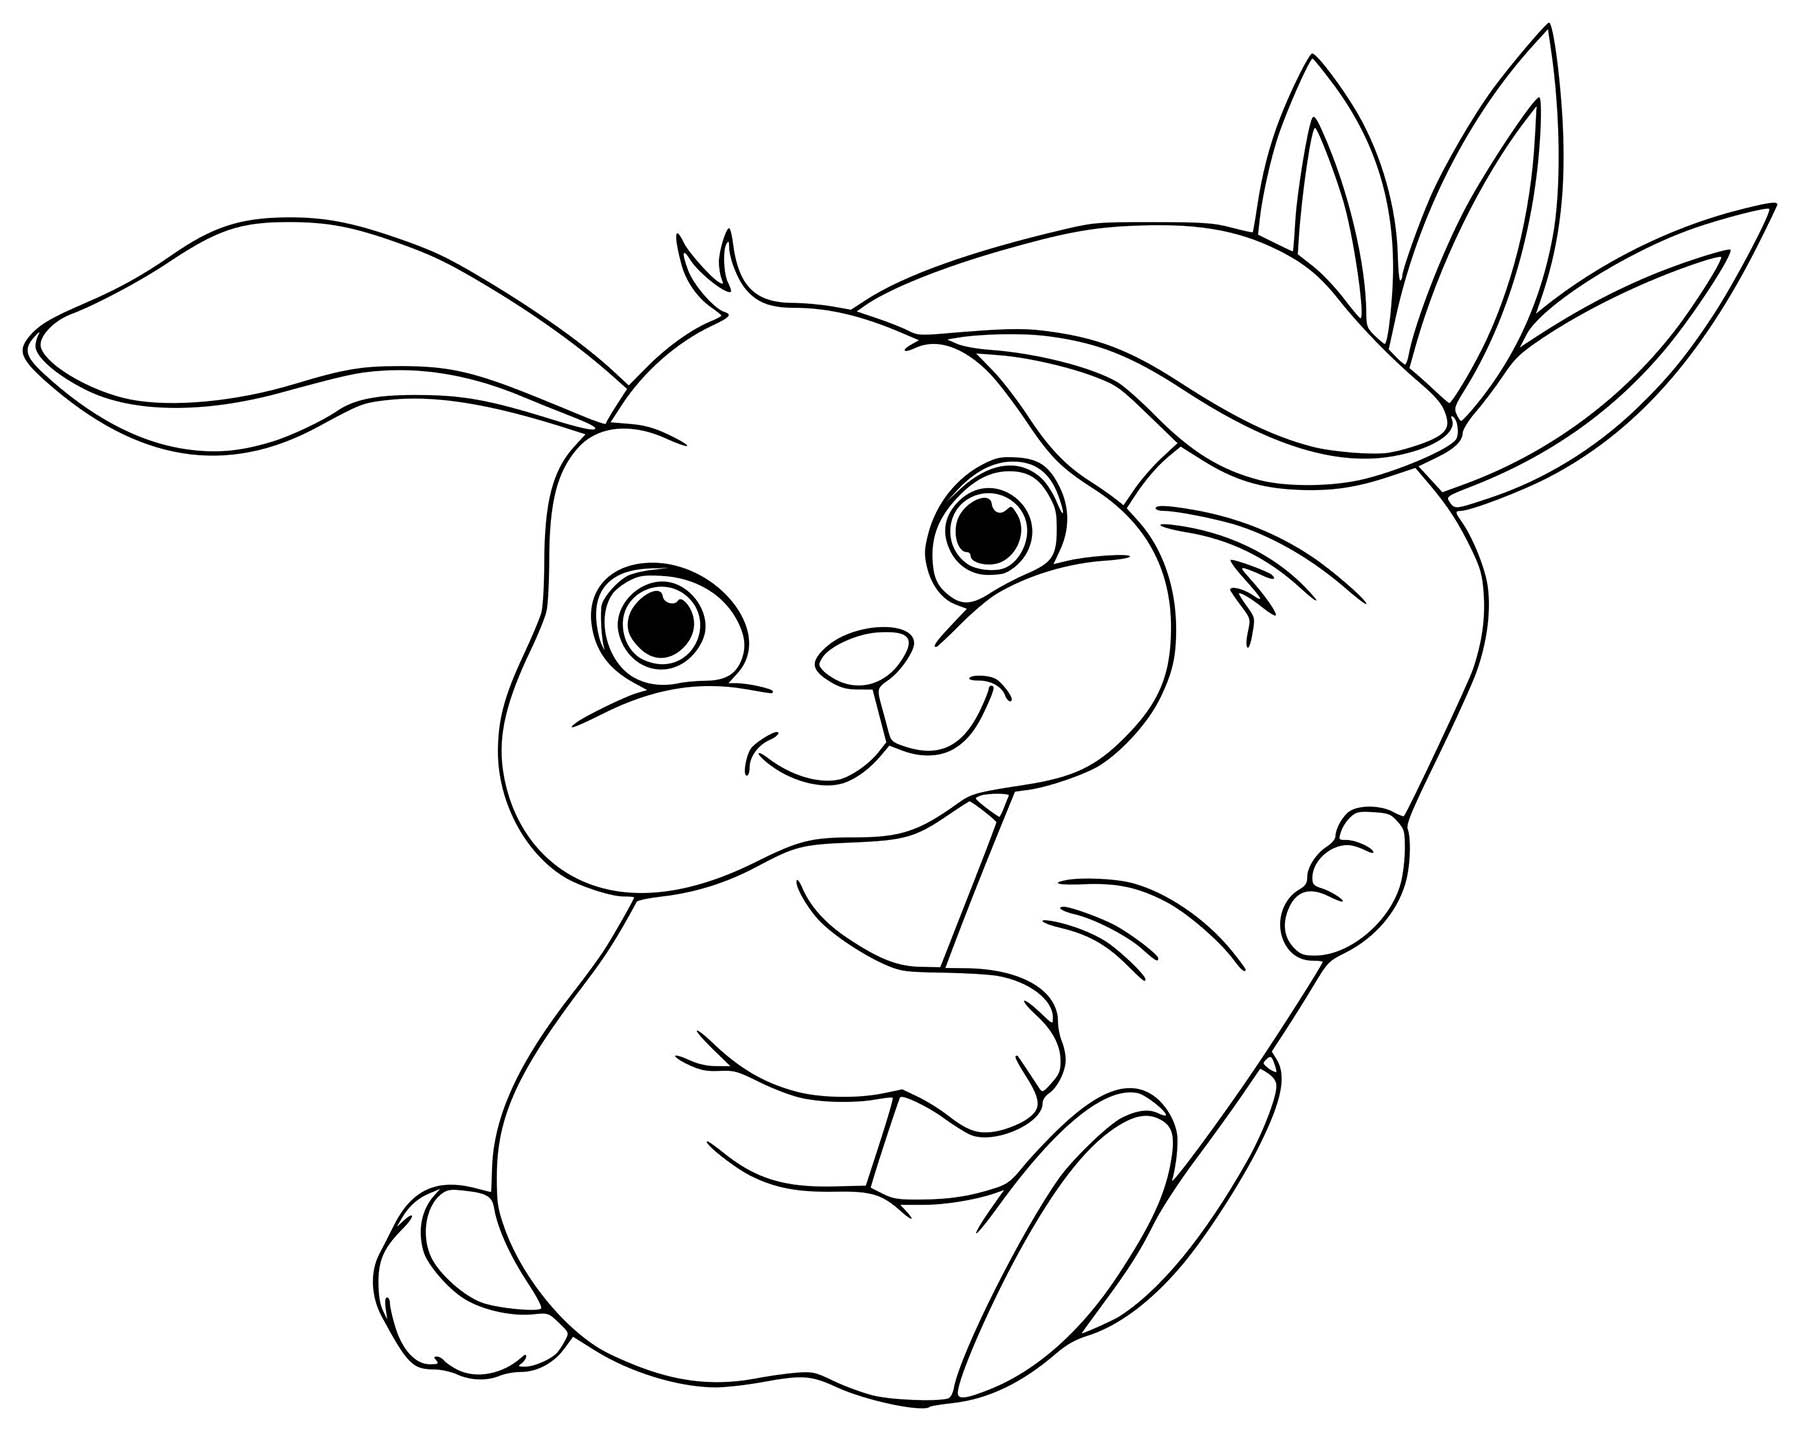 coloring kids rabbit bunny coloring pages best coloring pages for kids coloring rabbit kids